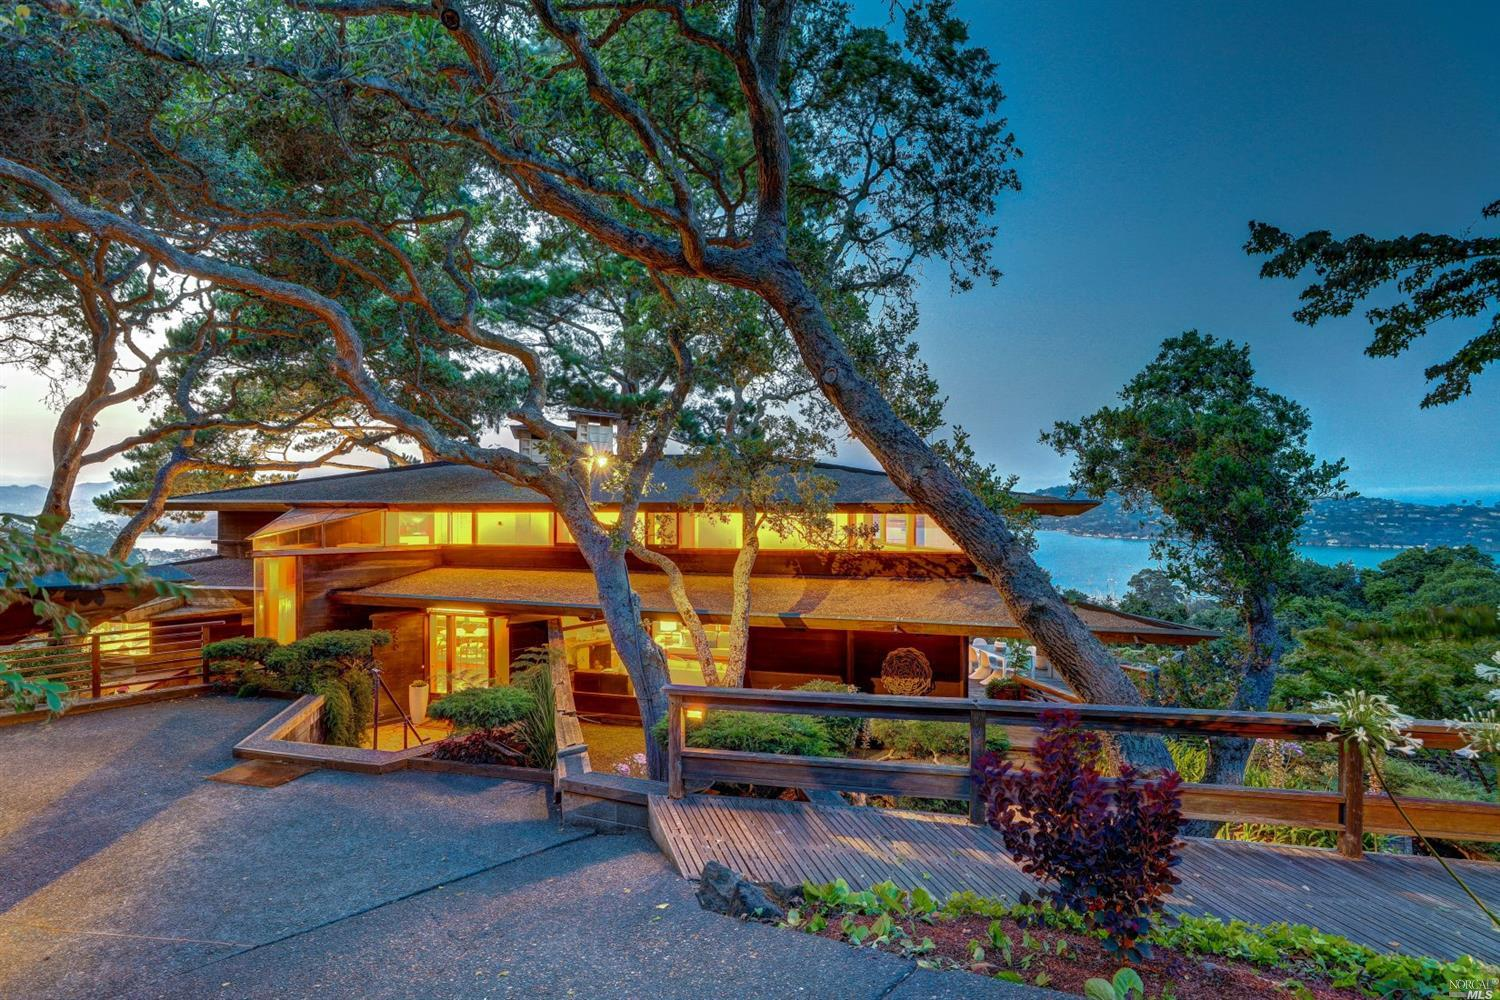 Midcentury modern gem with panoramic bay views asks $3.6M